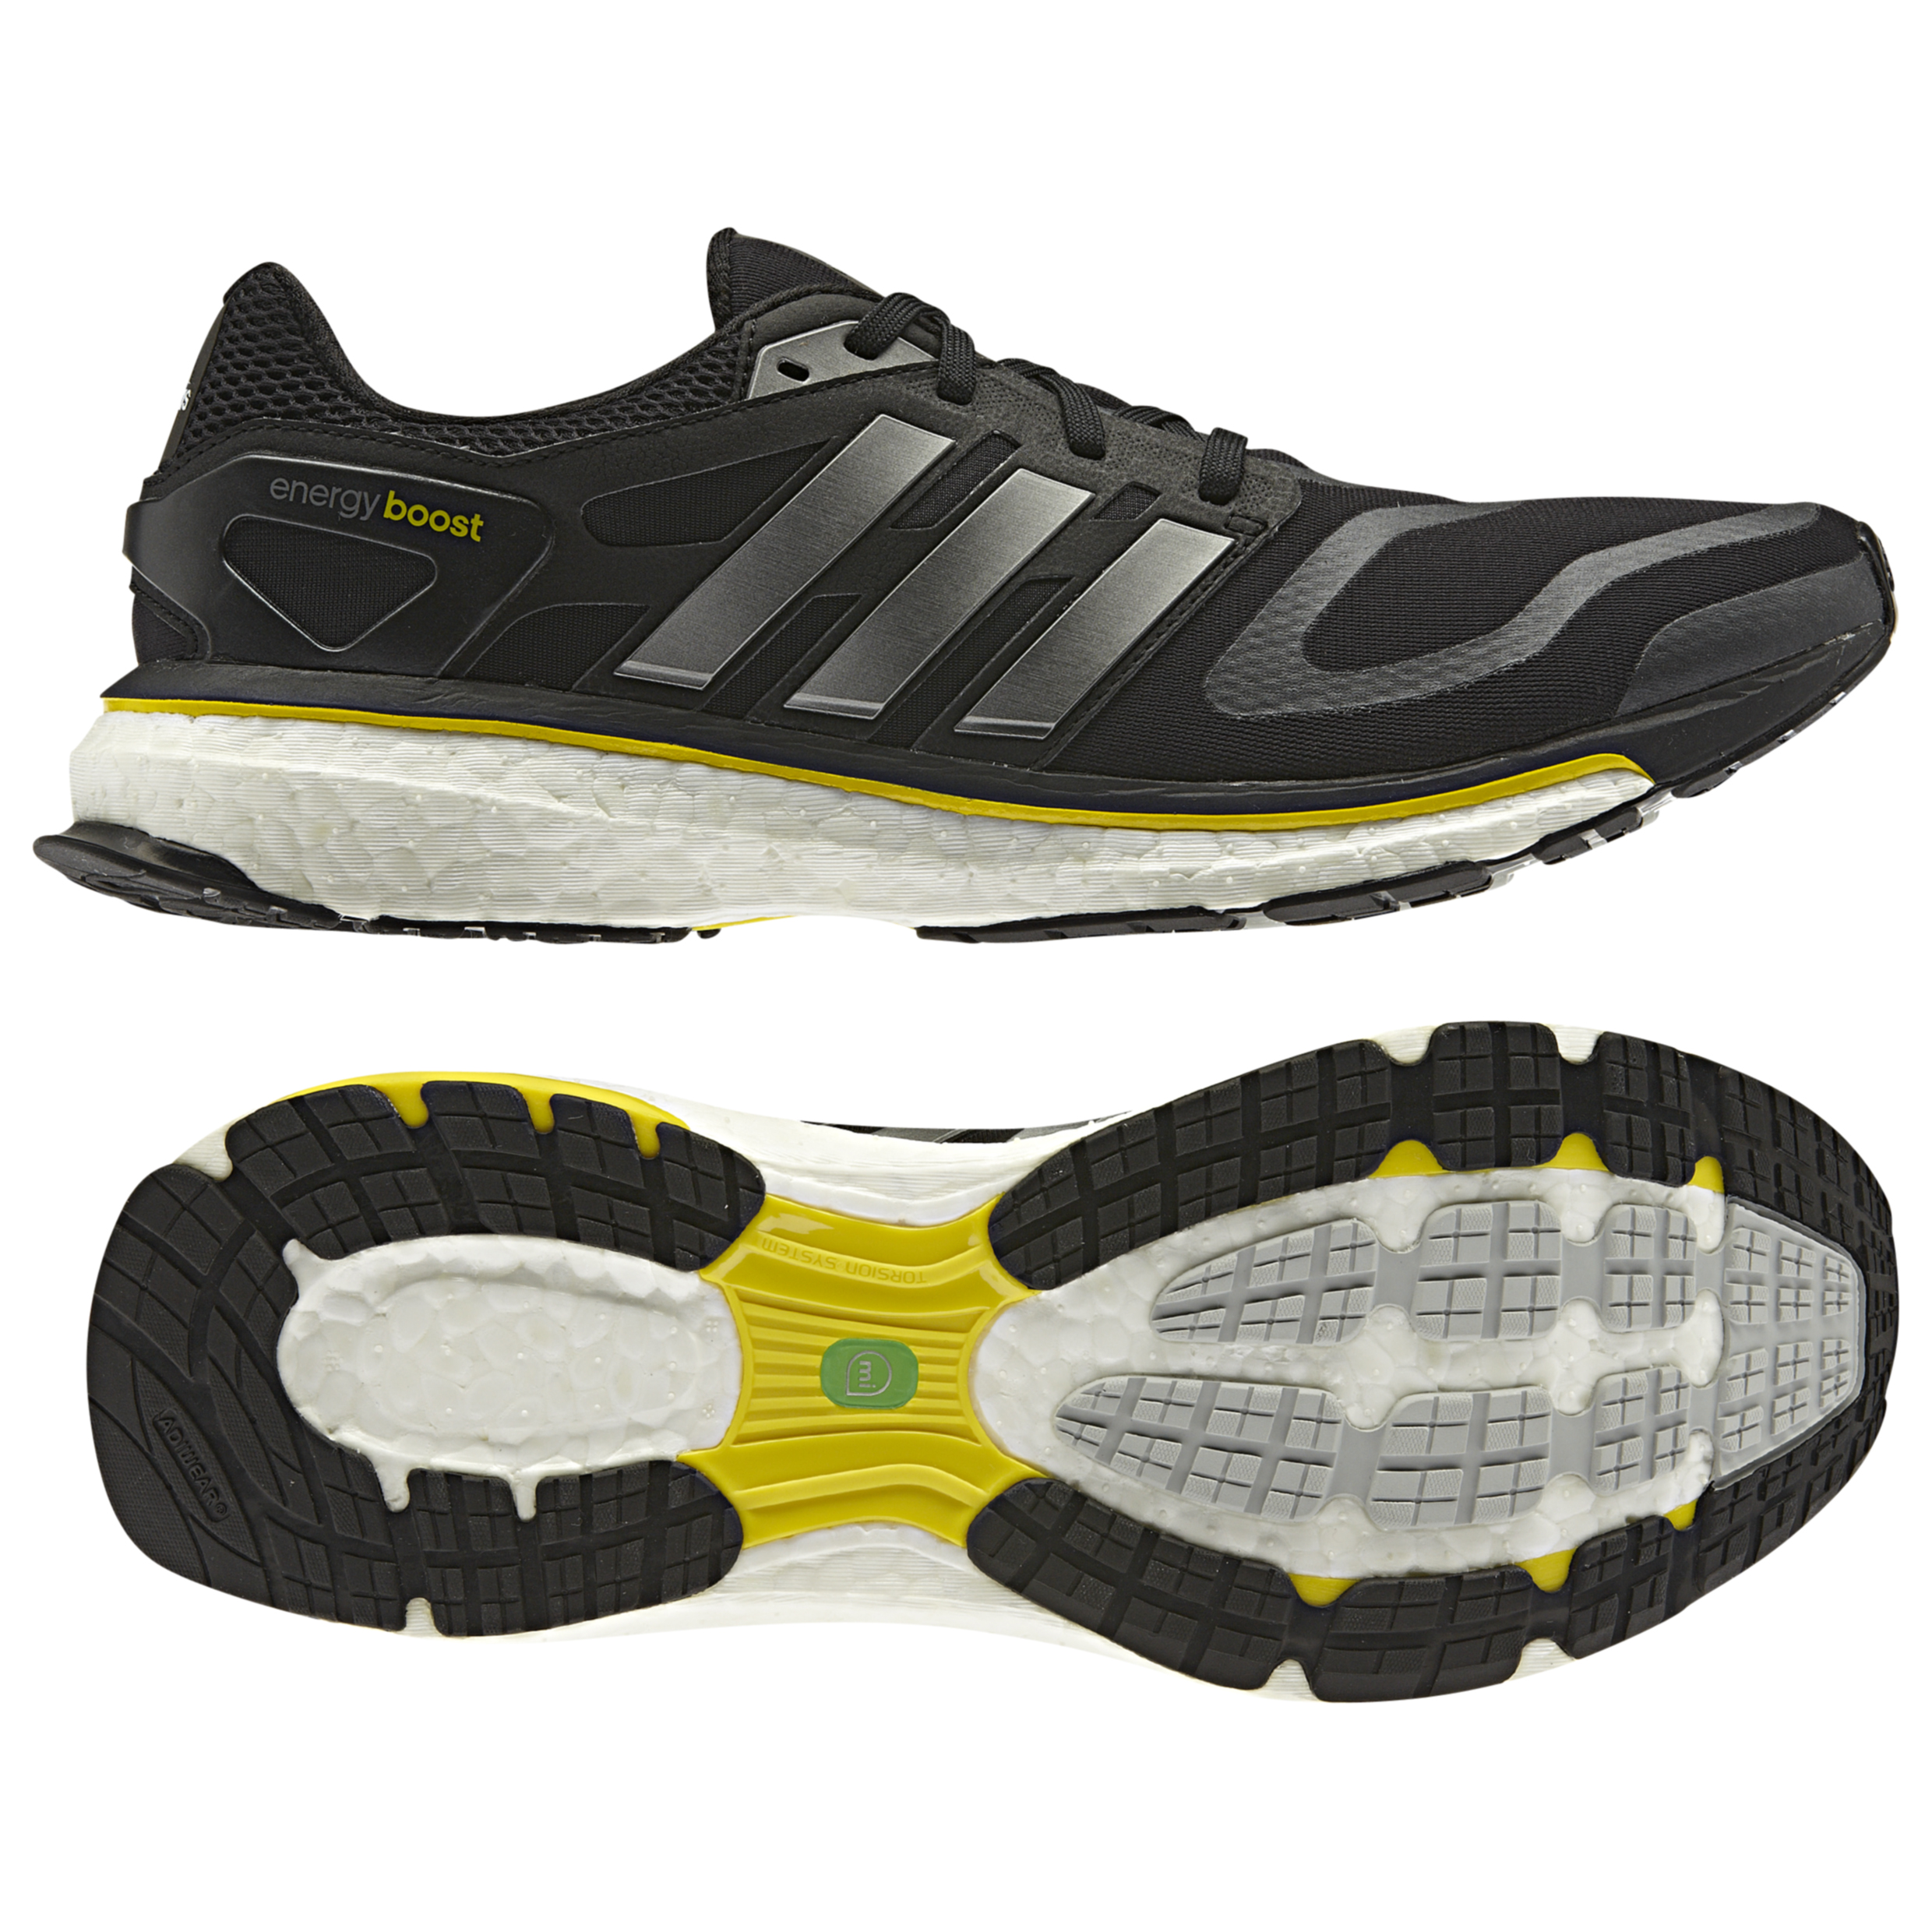 Adidas Energy Boost Running Trainers - Black/Neo Iron/Vivid Yellow